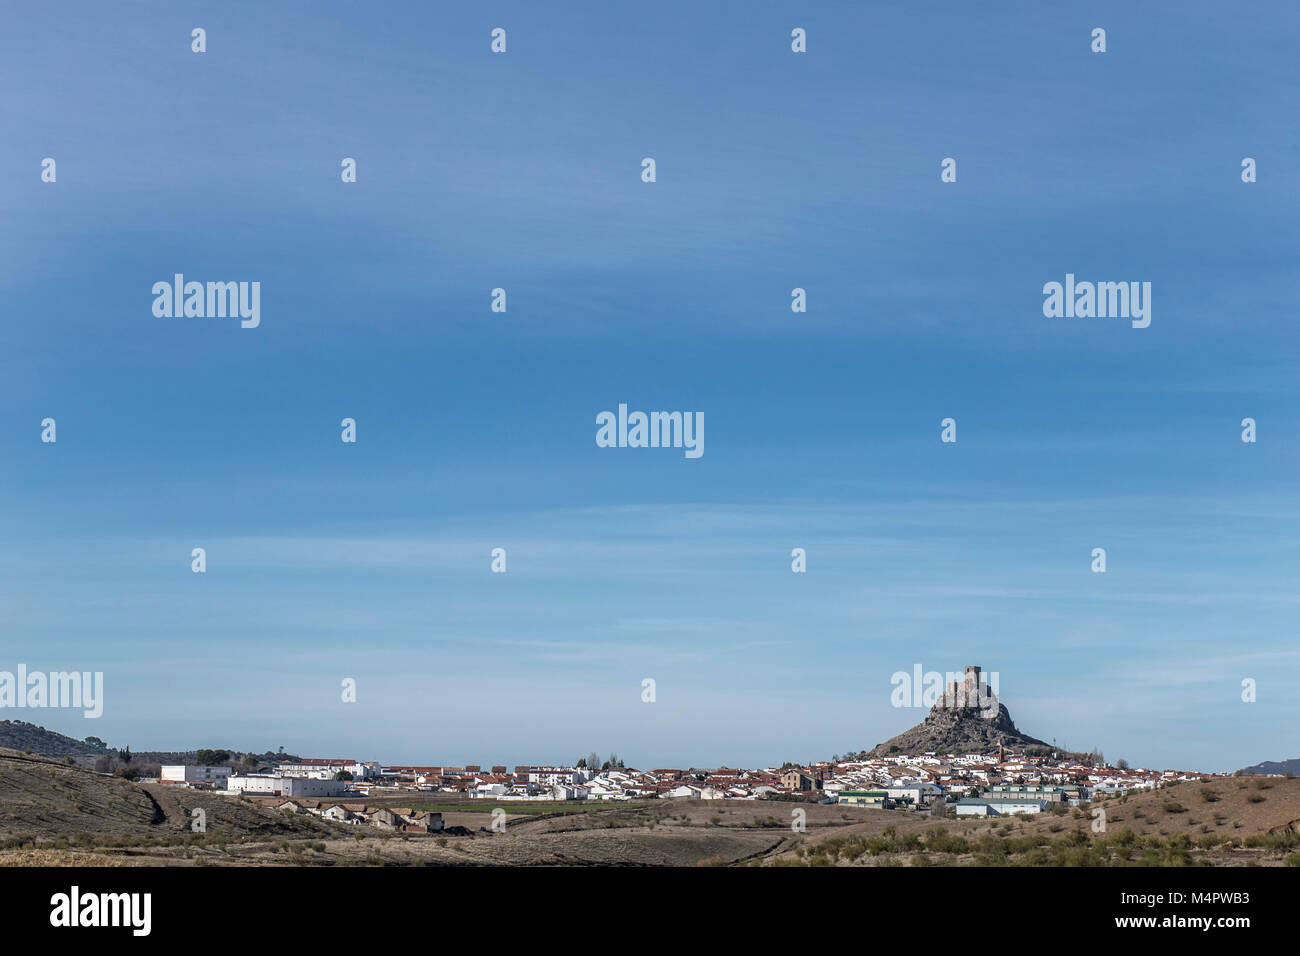 Outcrop rocky hill with Castle, Cordoba, Spain. Situated on the high rocky hill overlooking town of Belmez - Stock Image